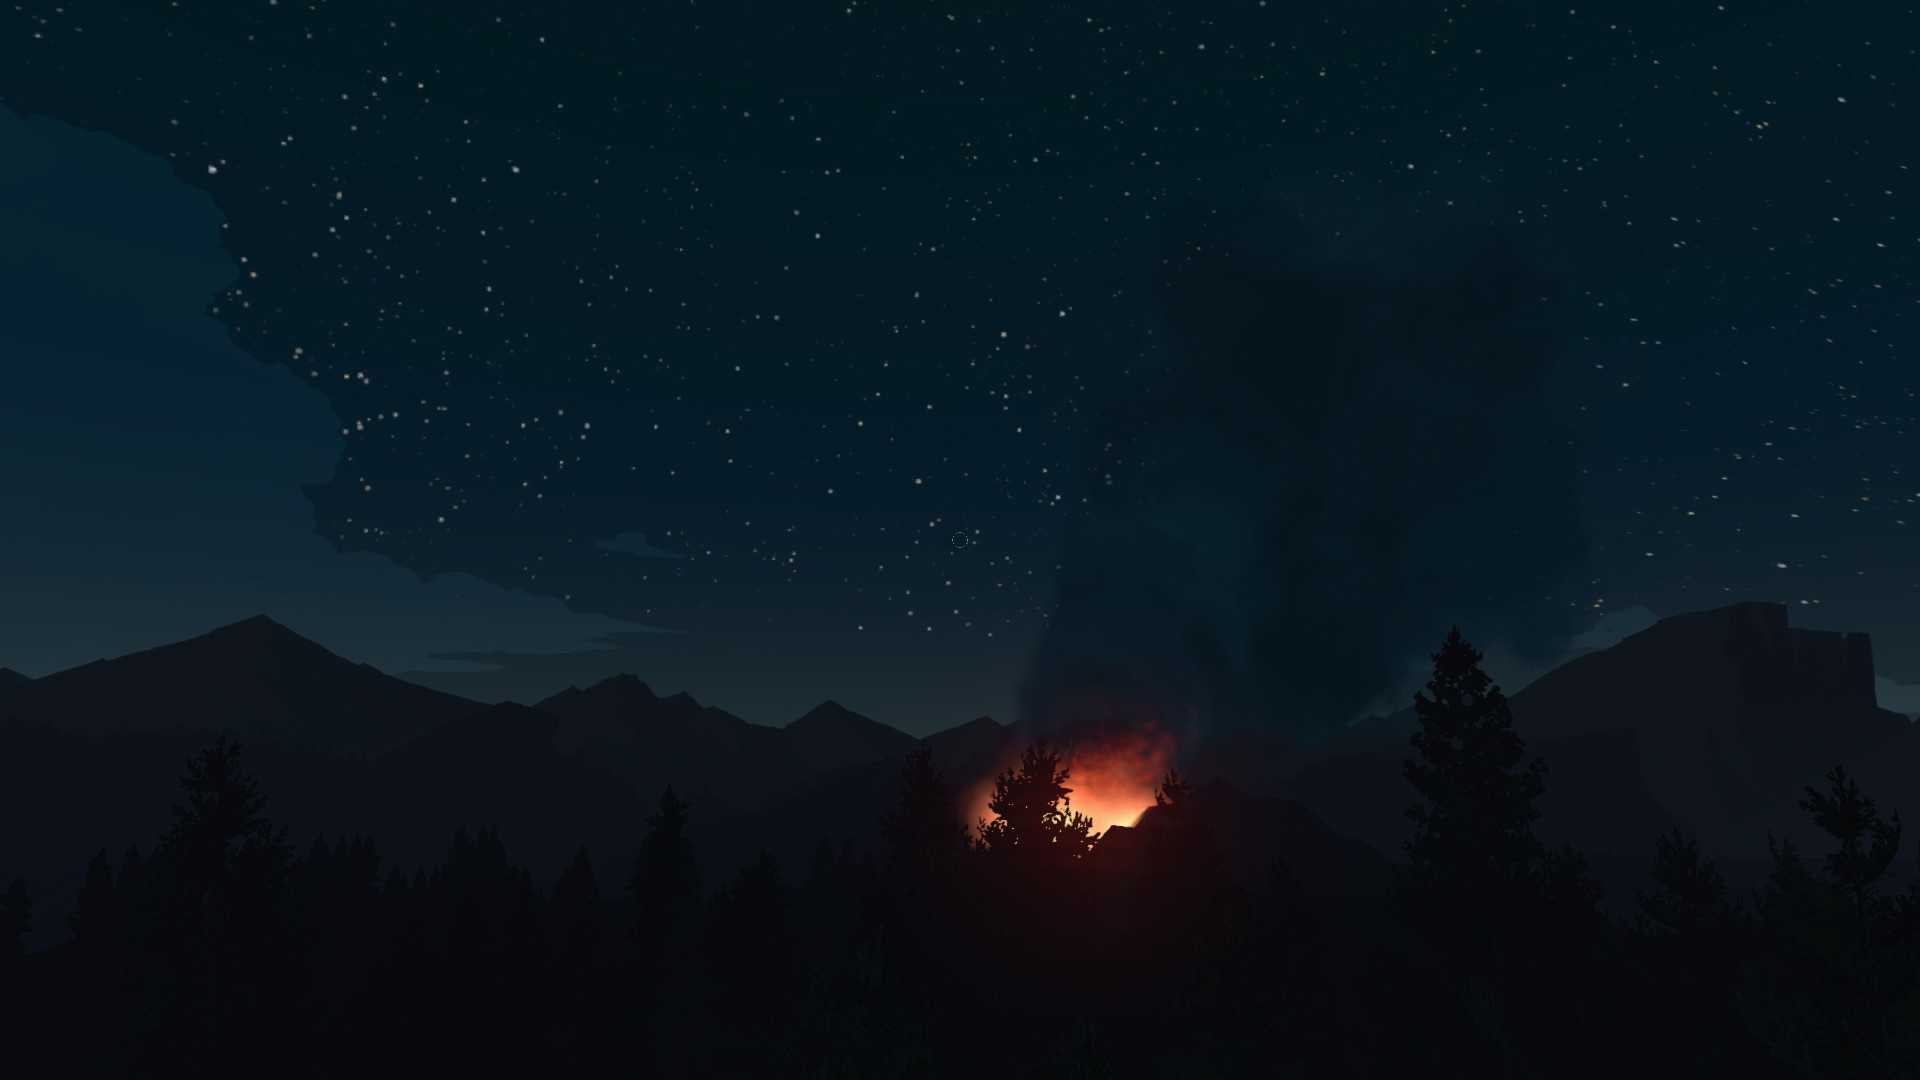 1920x1080 Firewatch Widescreen Wallpaper 409